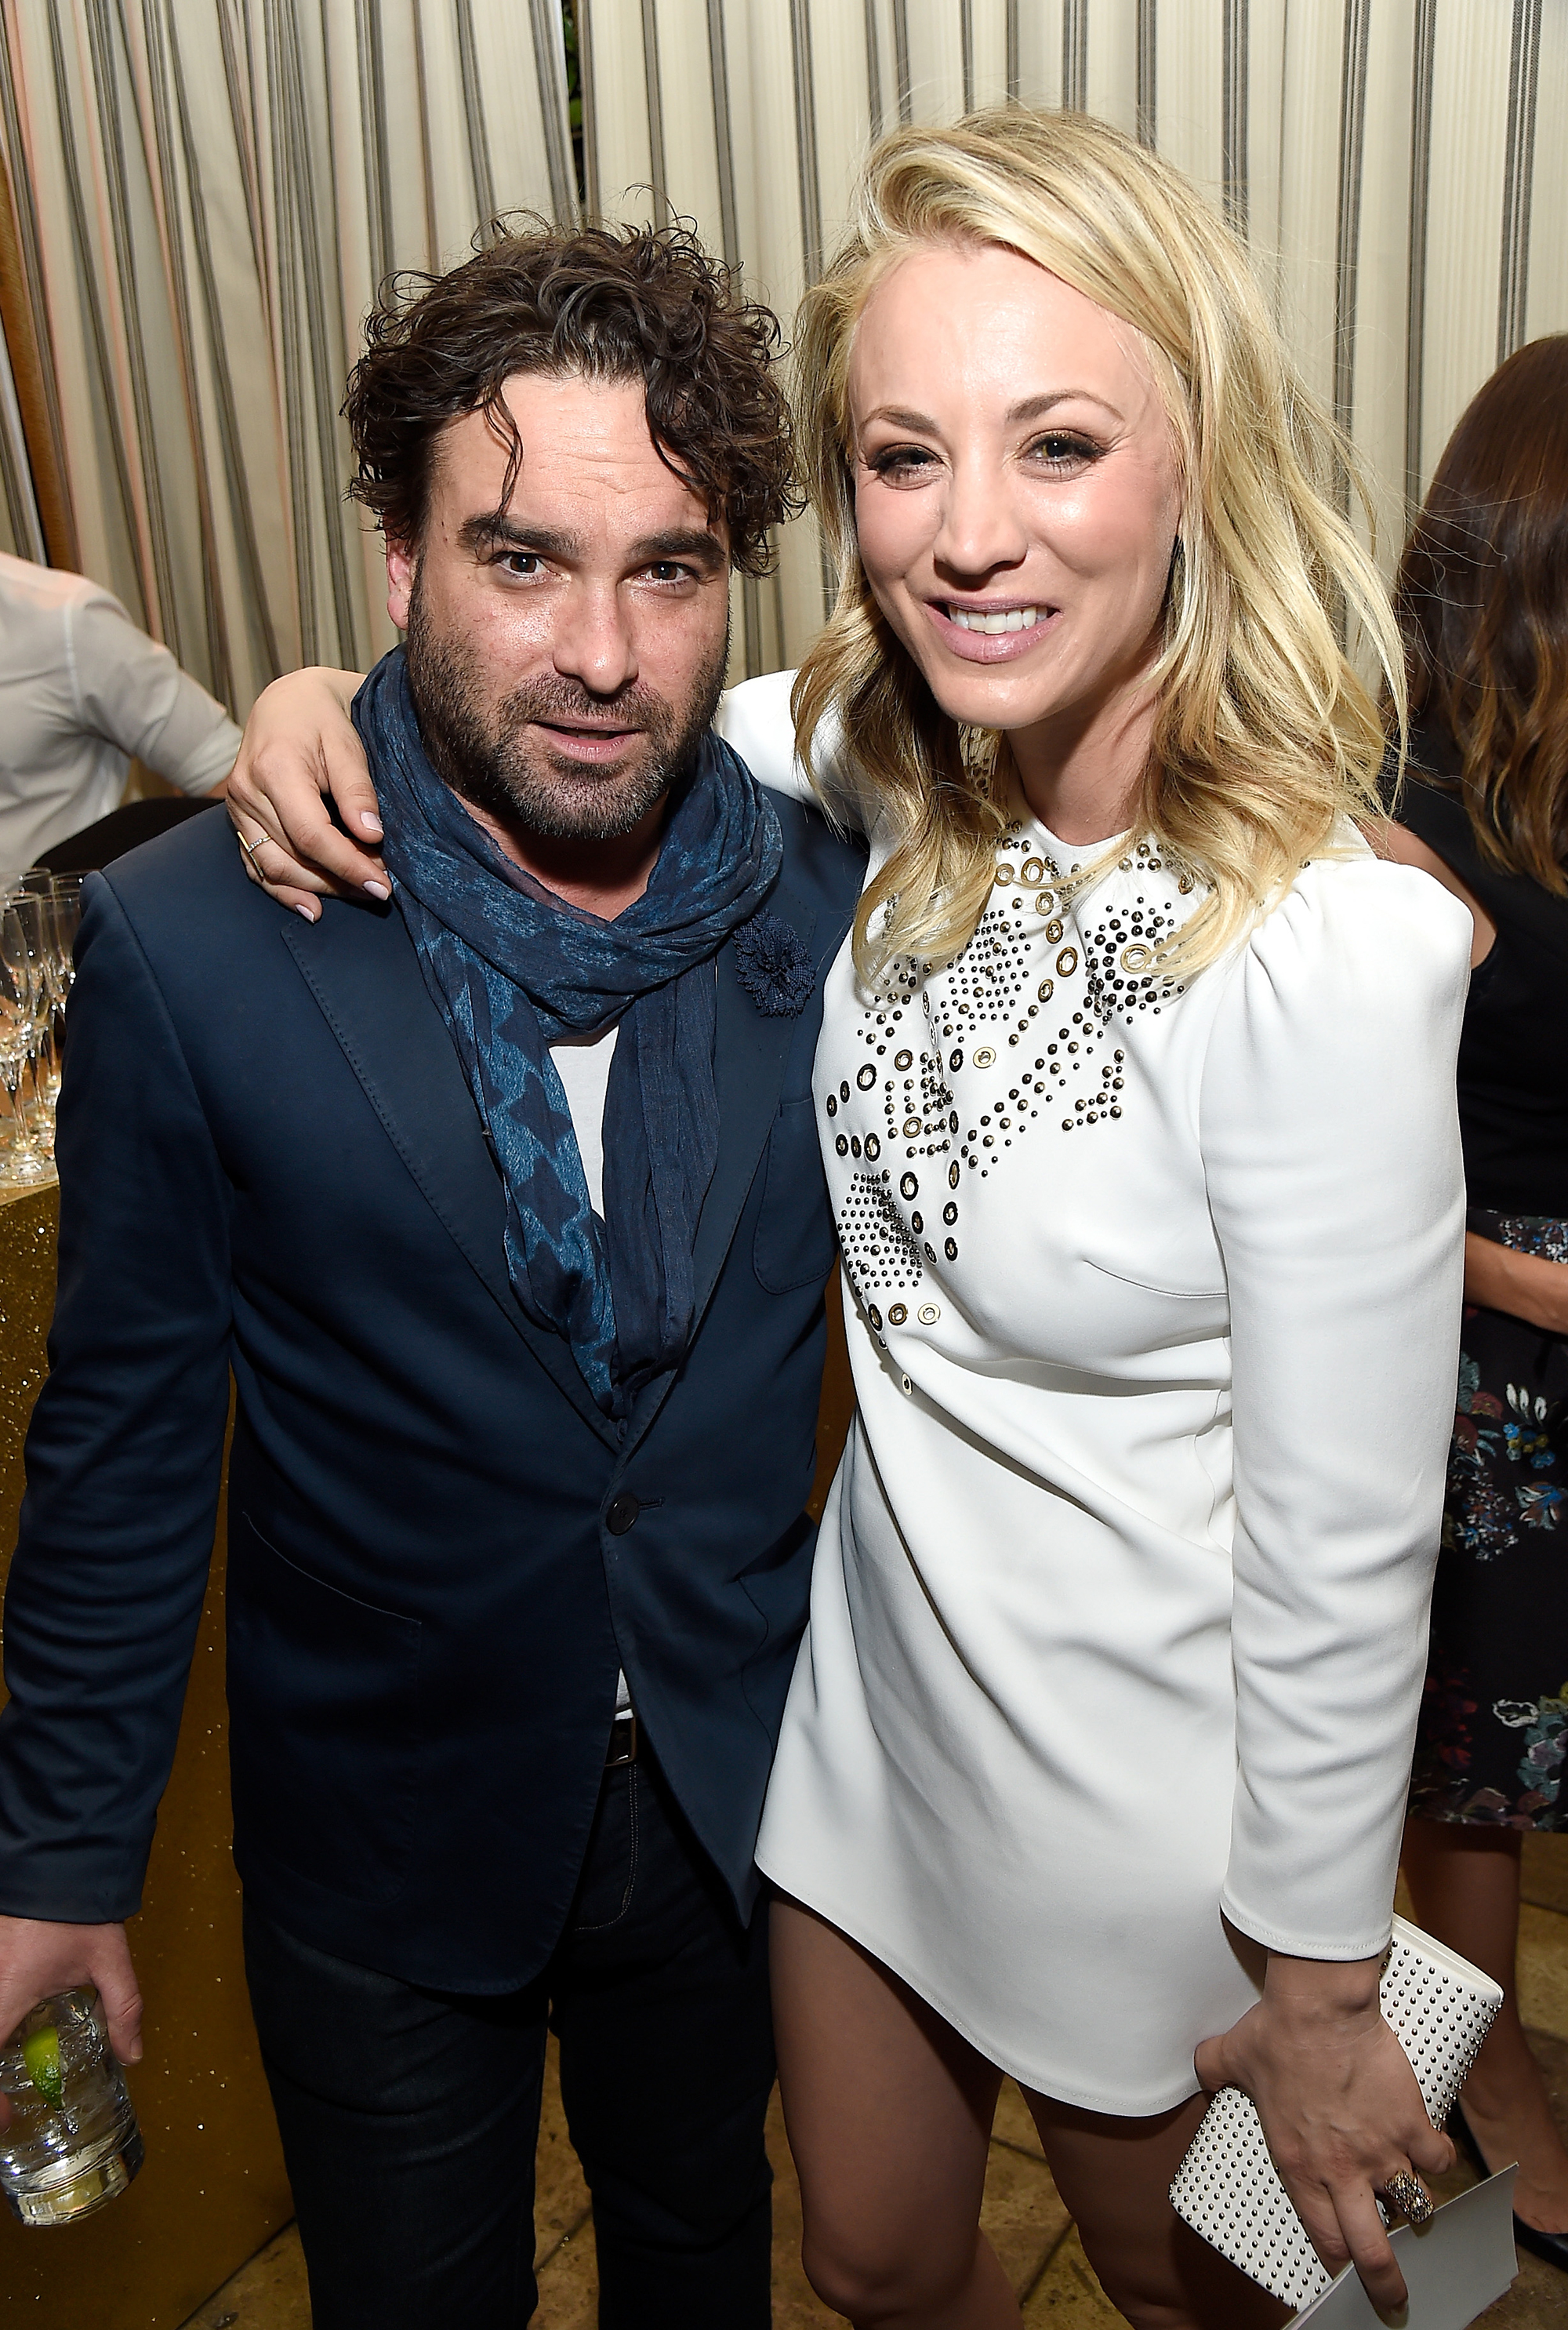 Who is kaley cuoco dating in real life